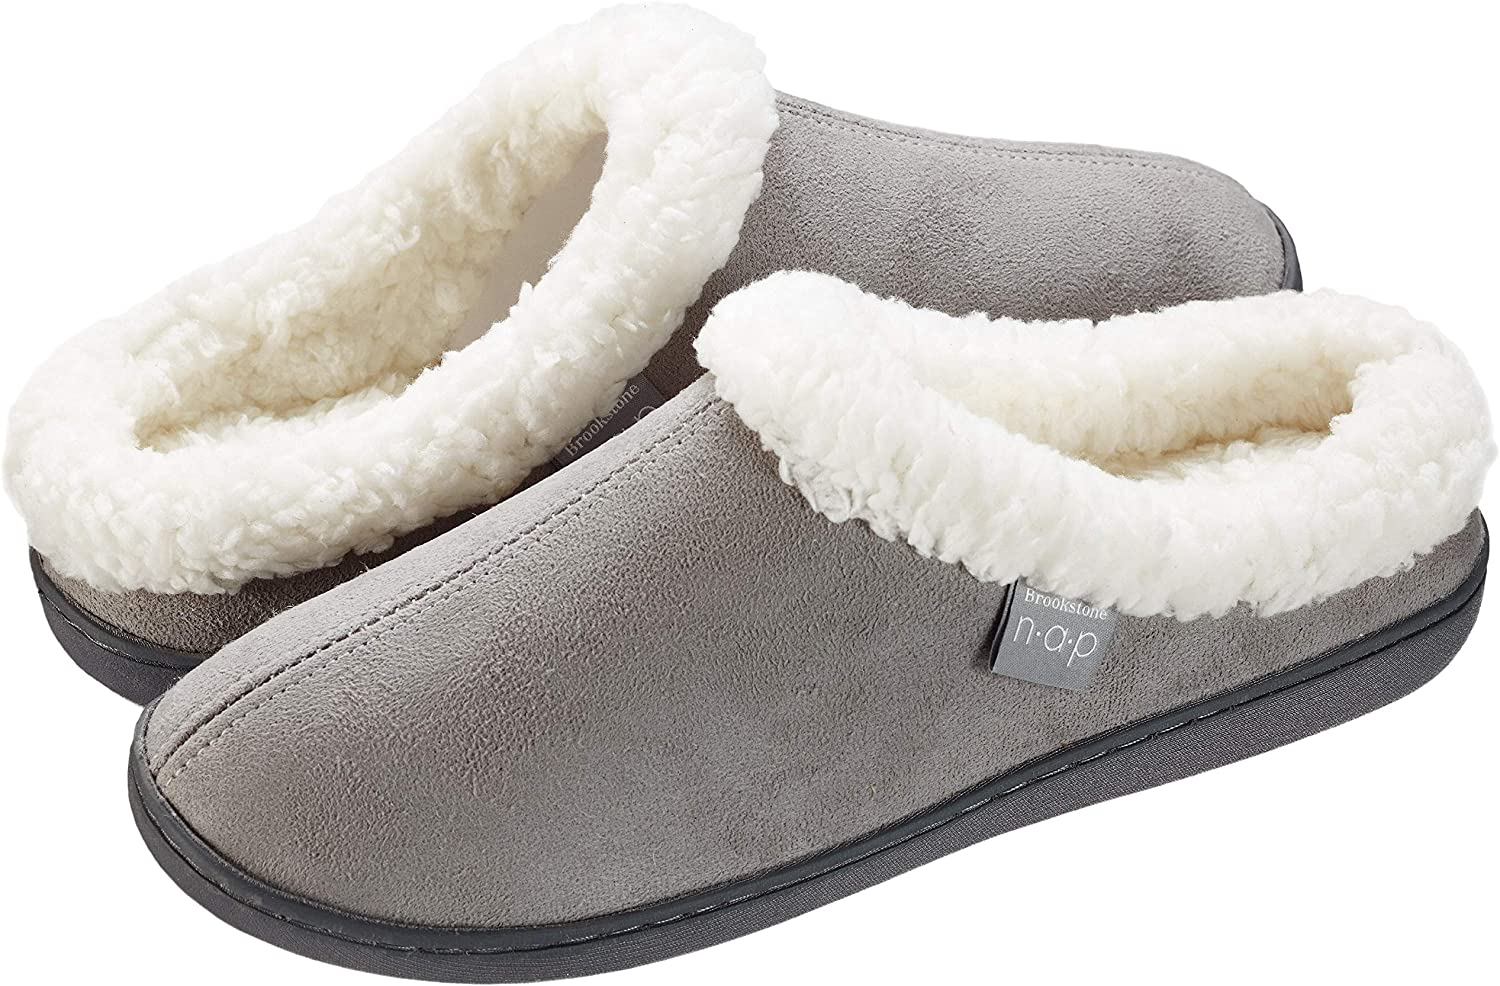 Brookstone New Orleans High order Mall Slip-On Sherpa Slippers - Supportive Foam Memory Temp